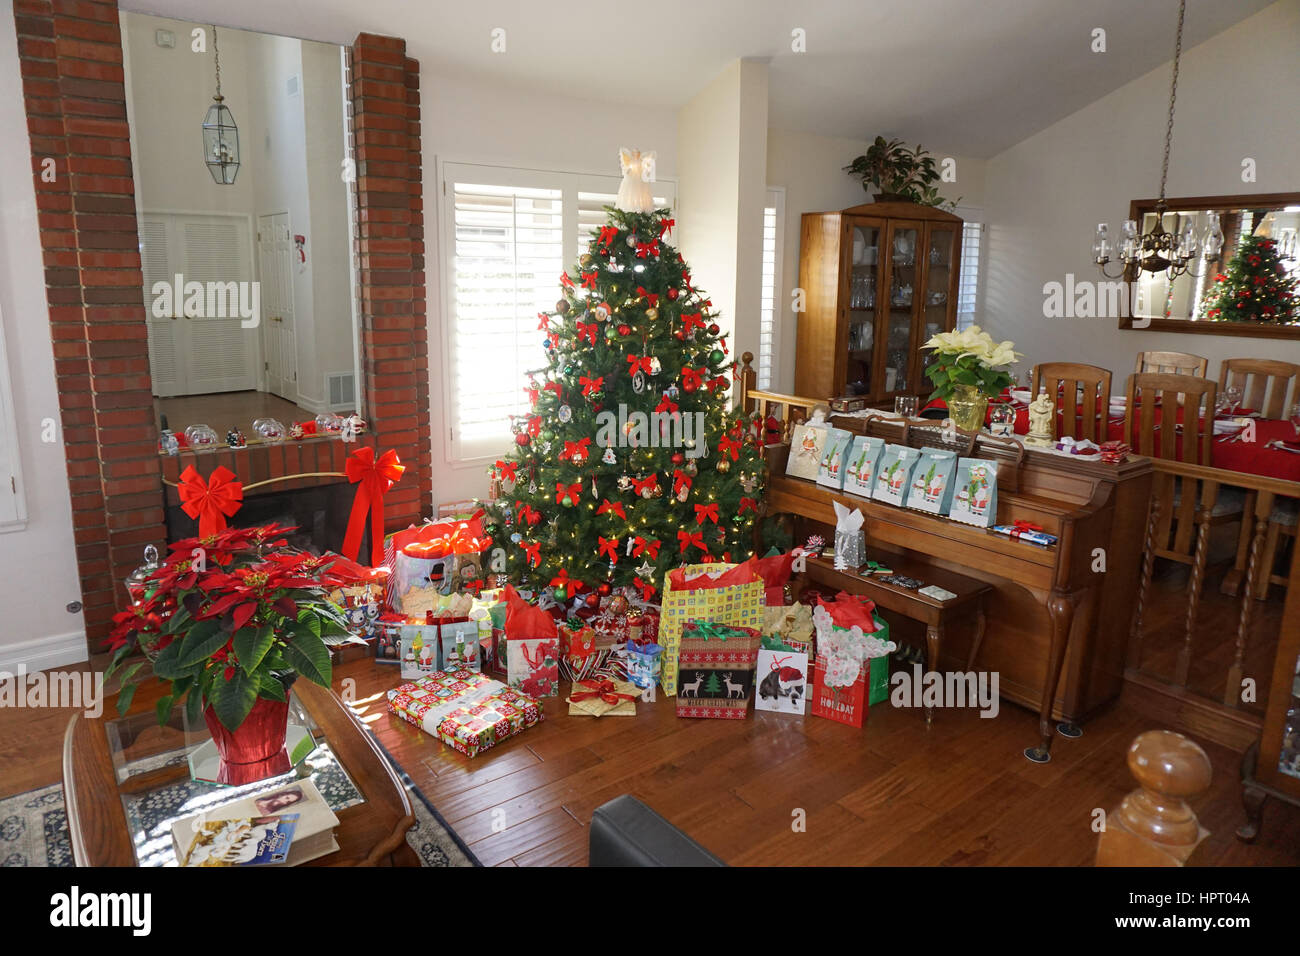 Christmas Tree with Red Ribbons - Stock Image